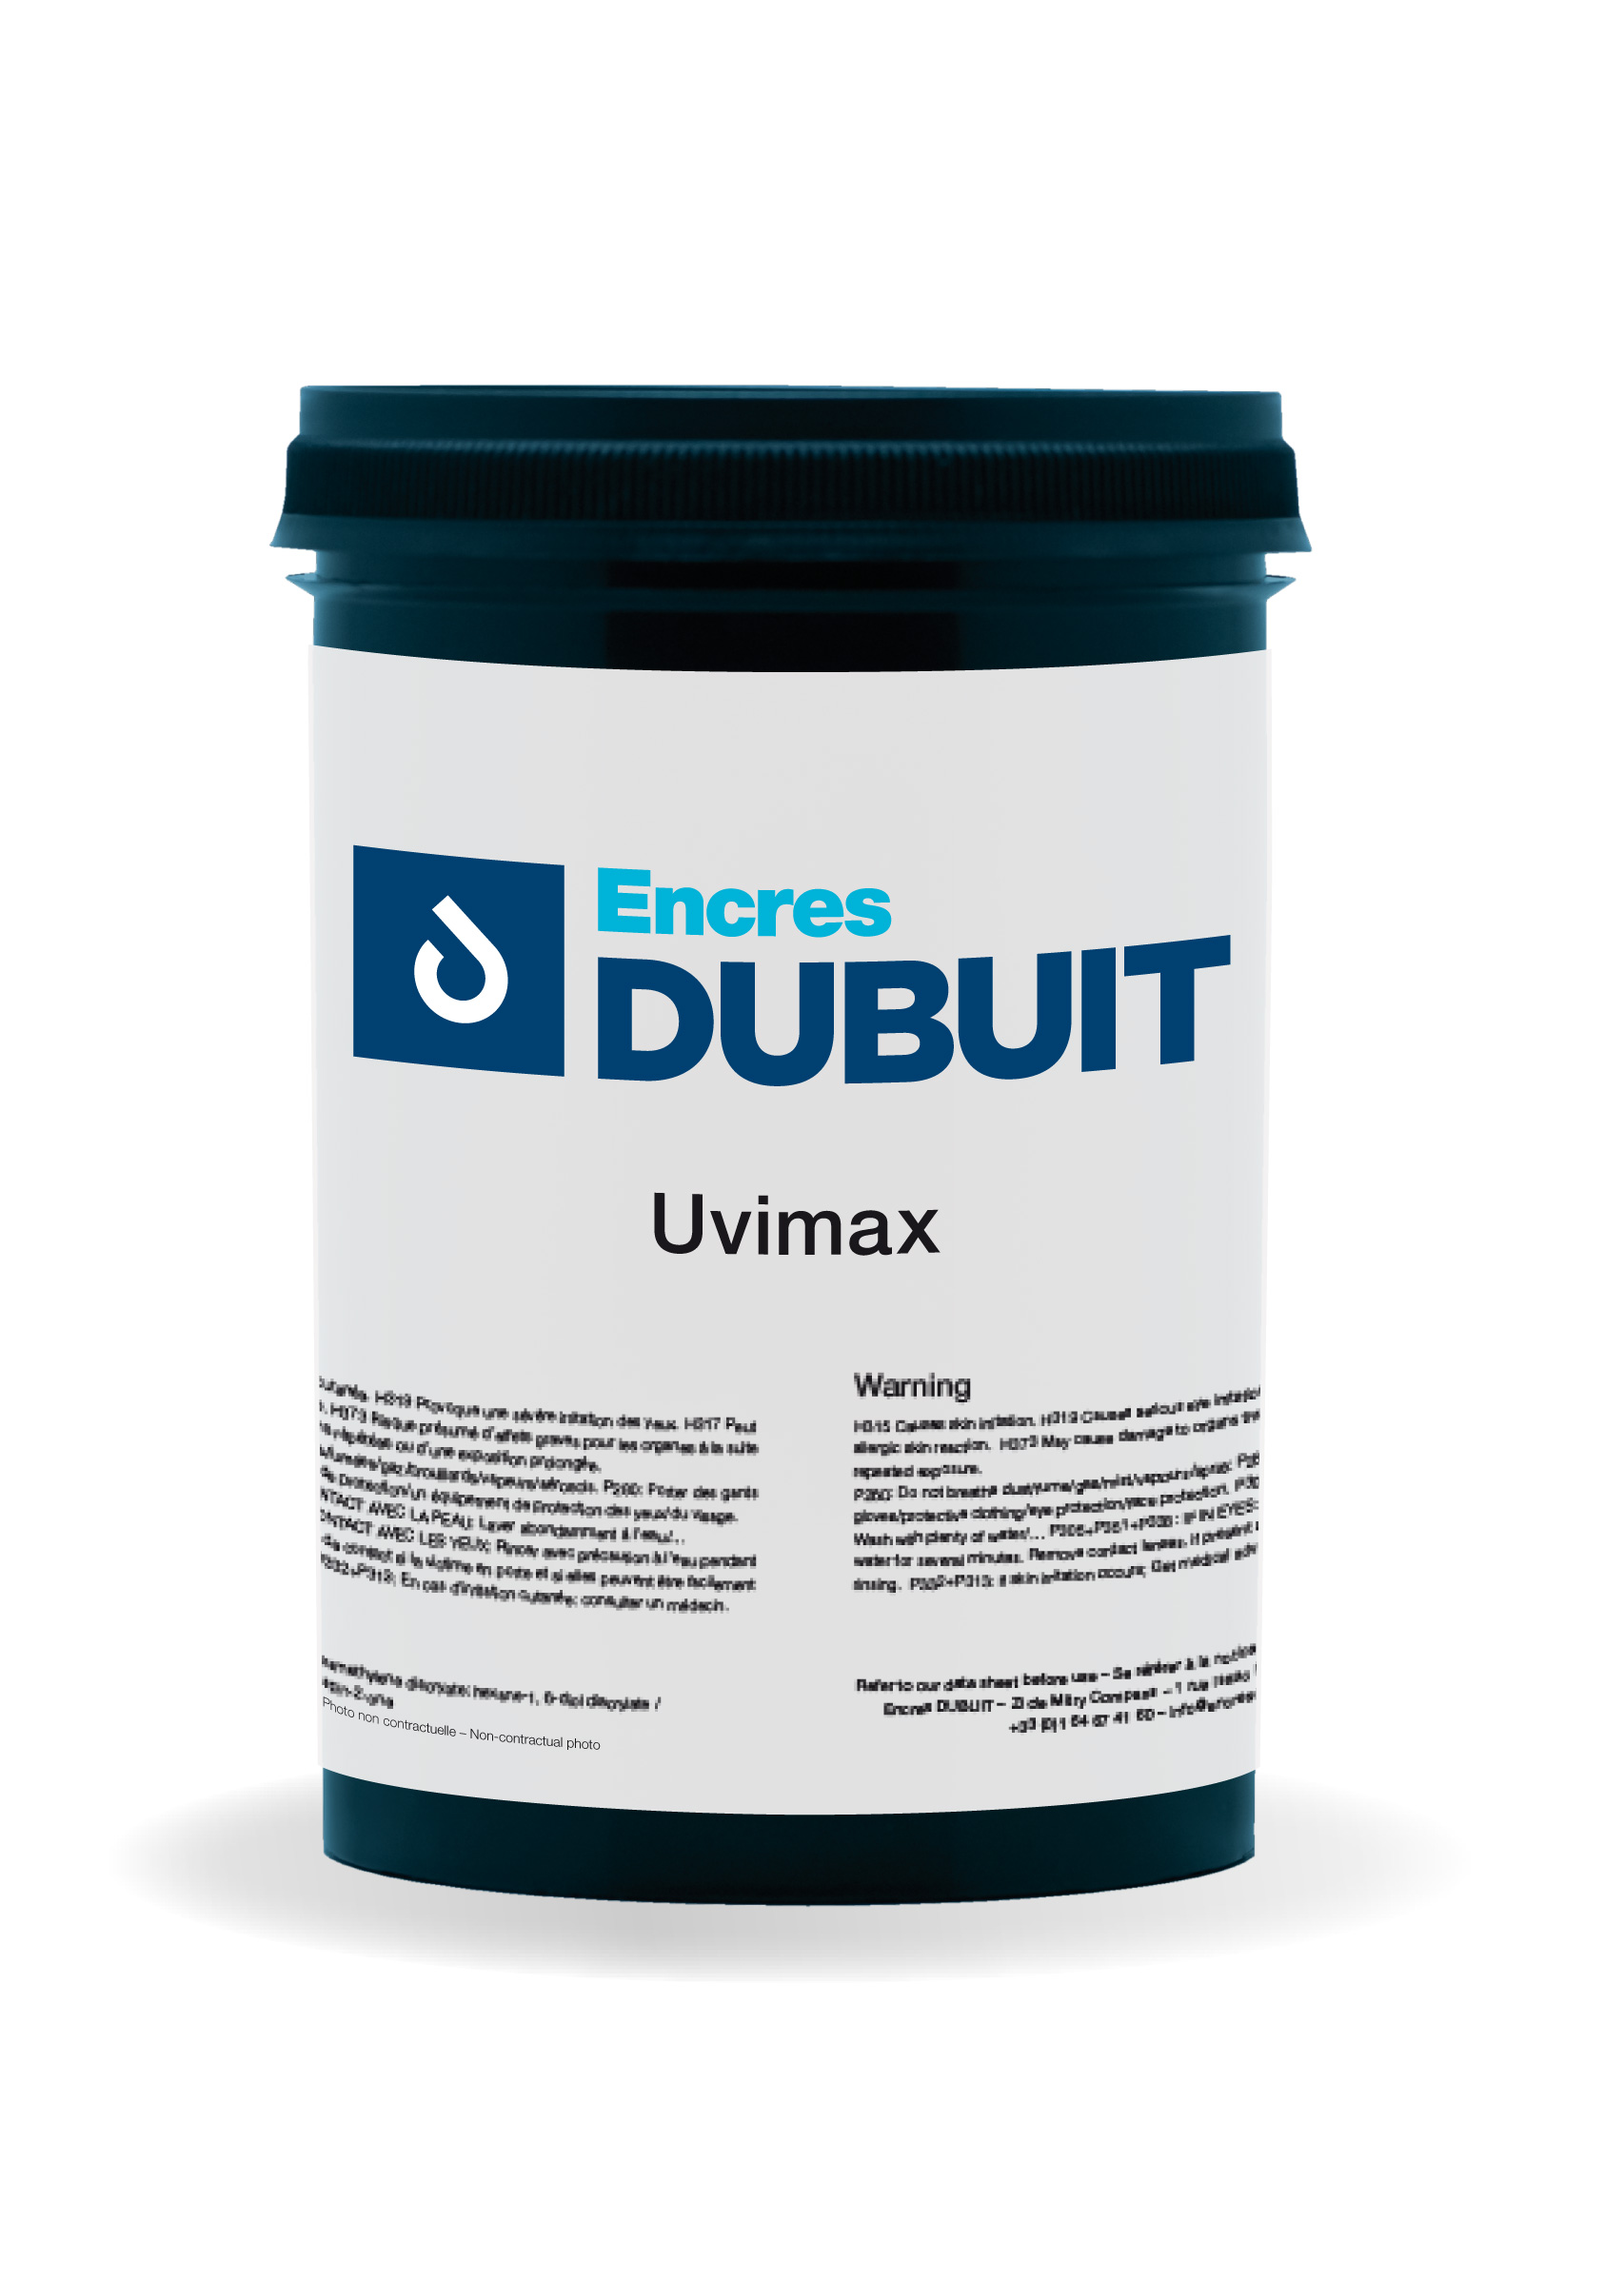 Serie Uvimax Encres DUBUIT - UV Screen Printing Ink